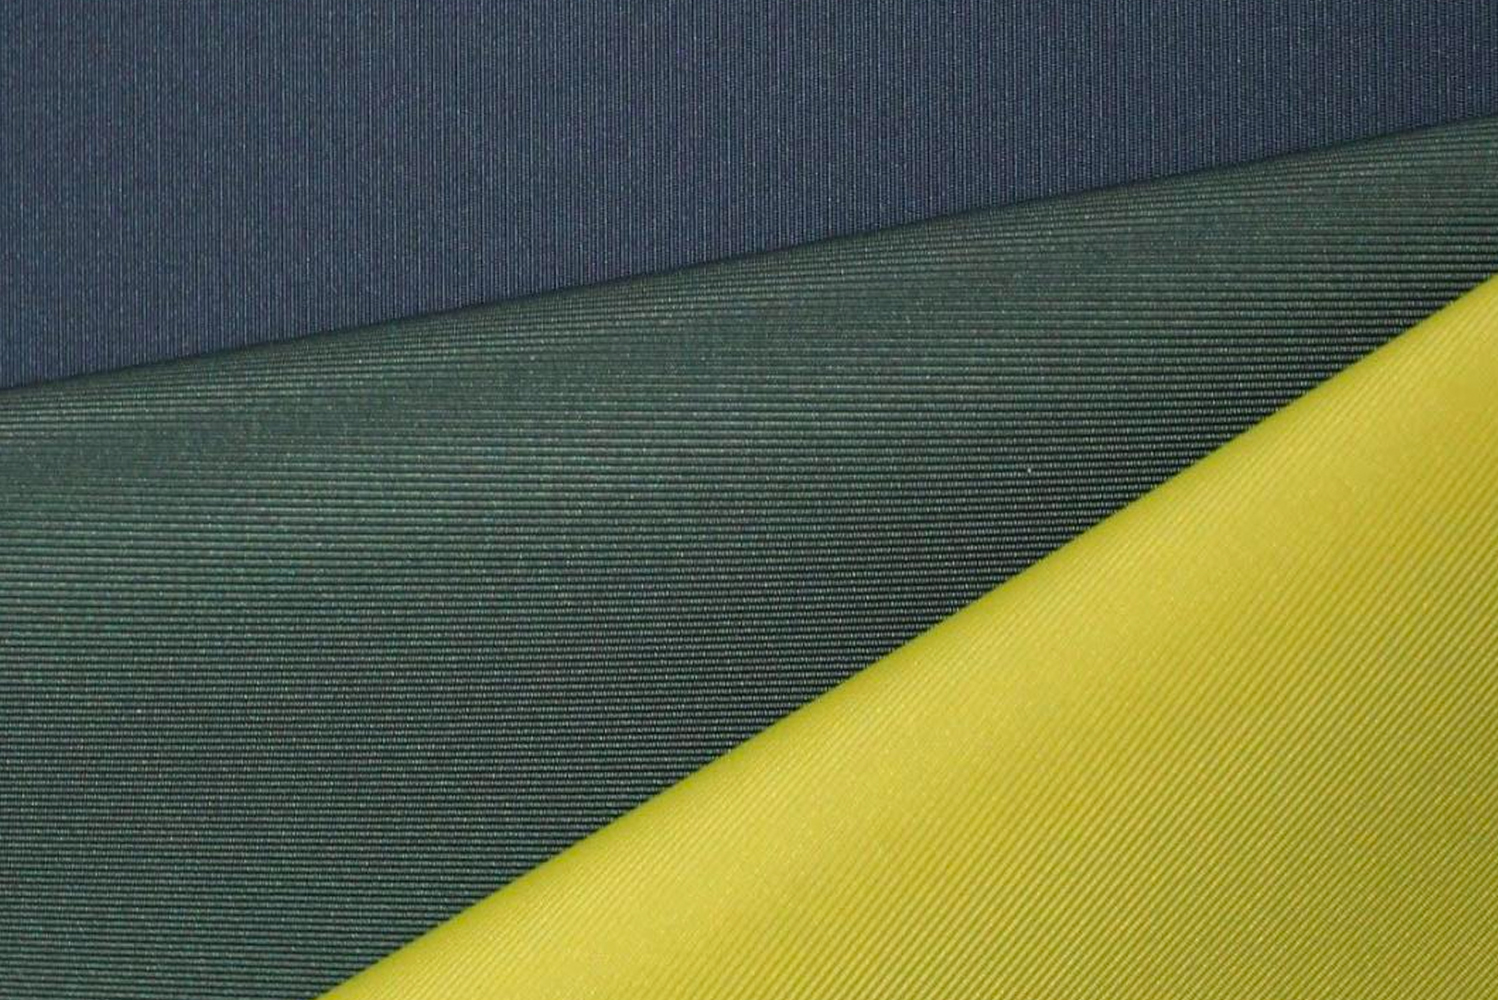 KB Contract announced Aptitude, a linear, ribbed fabric-like upholstery collection with various color options and superior performance attributes.